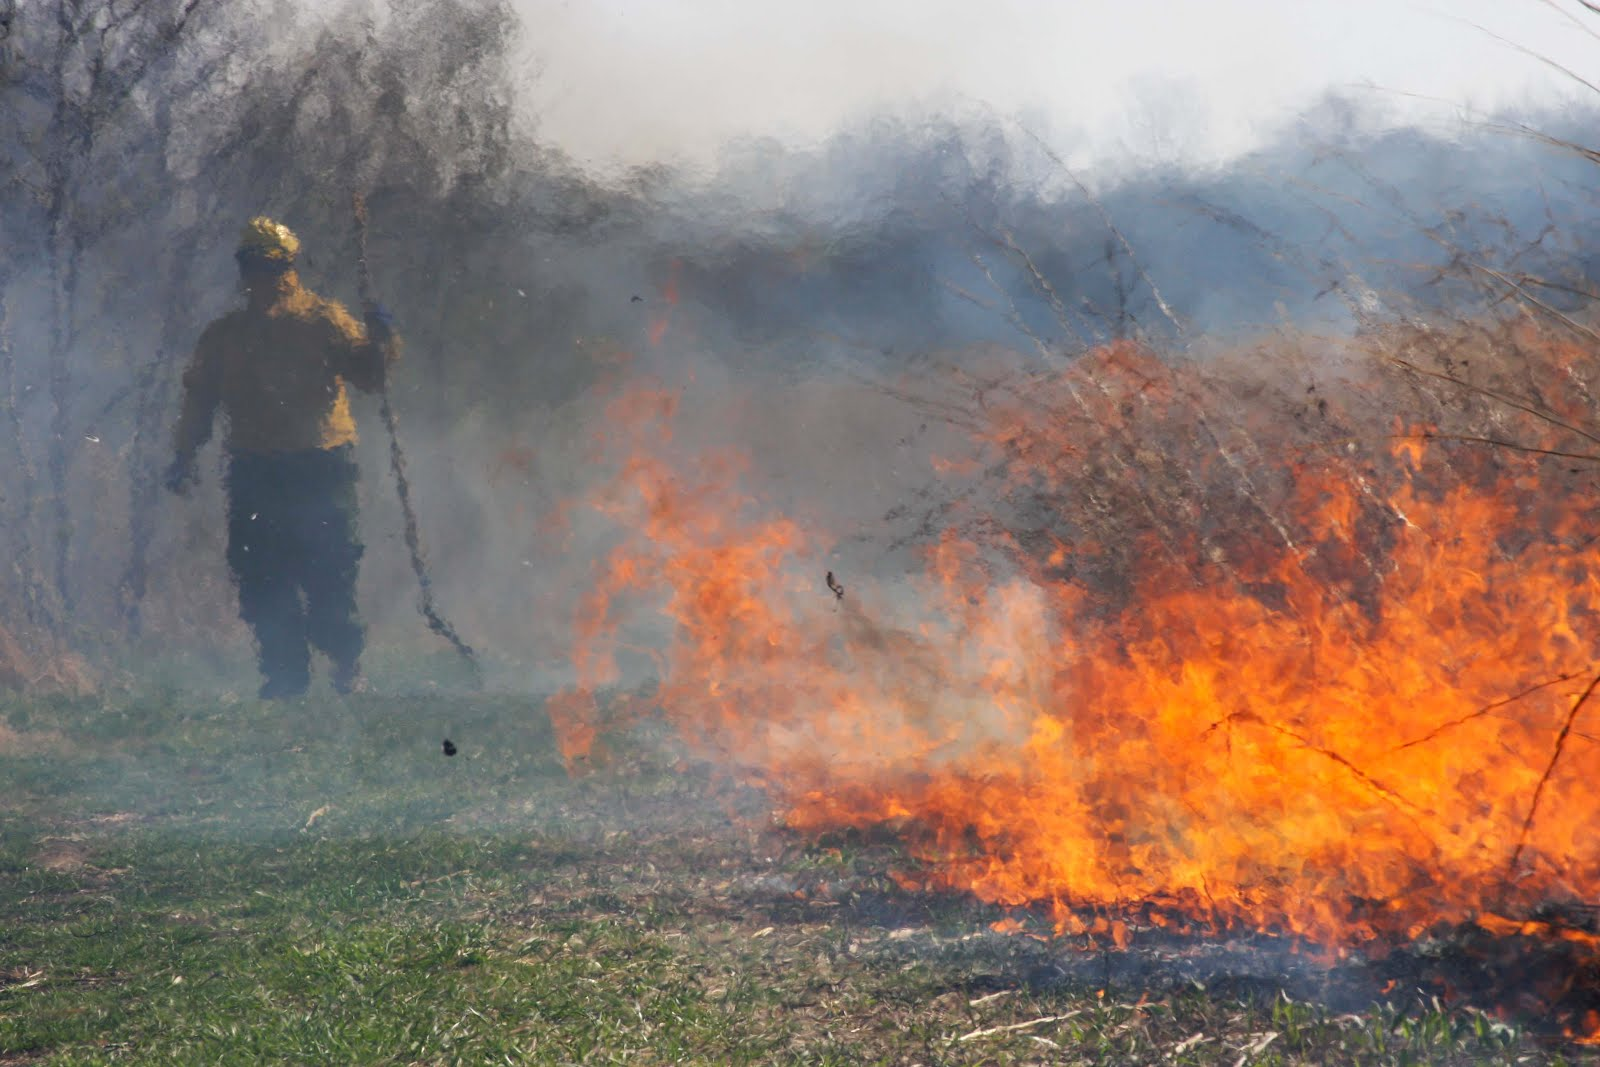 Fighting fire with fire: State policy hampers use of controlled burns